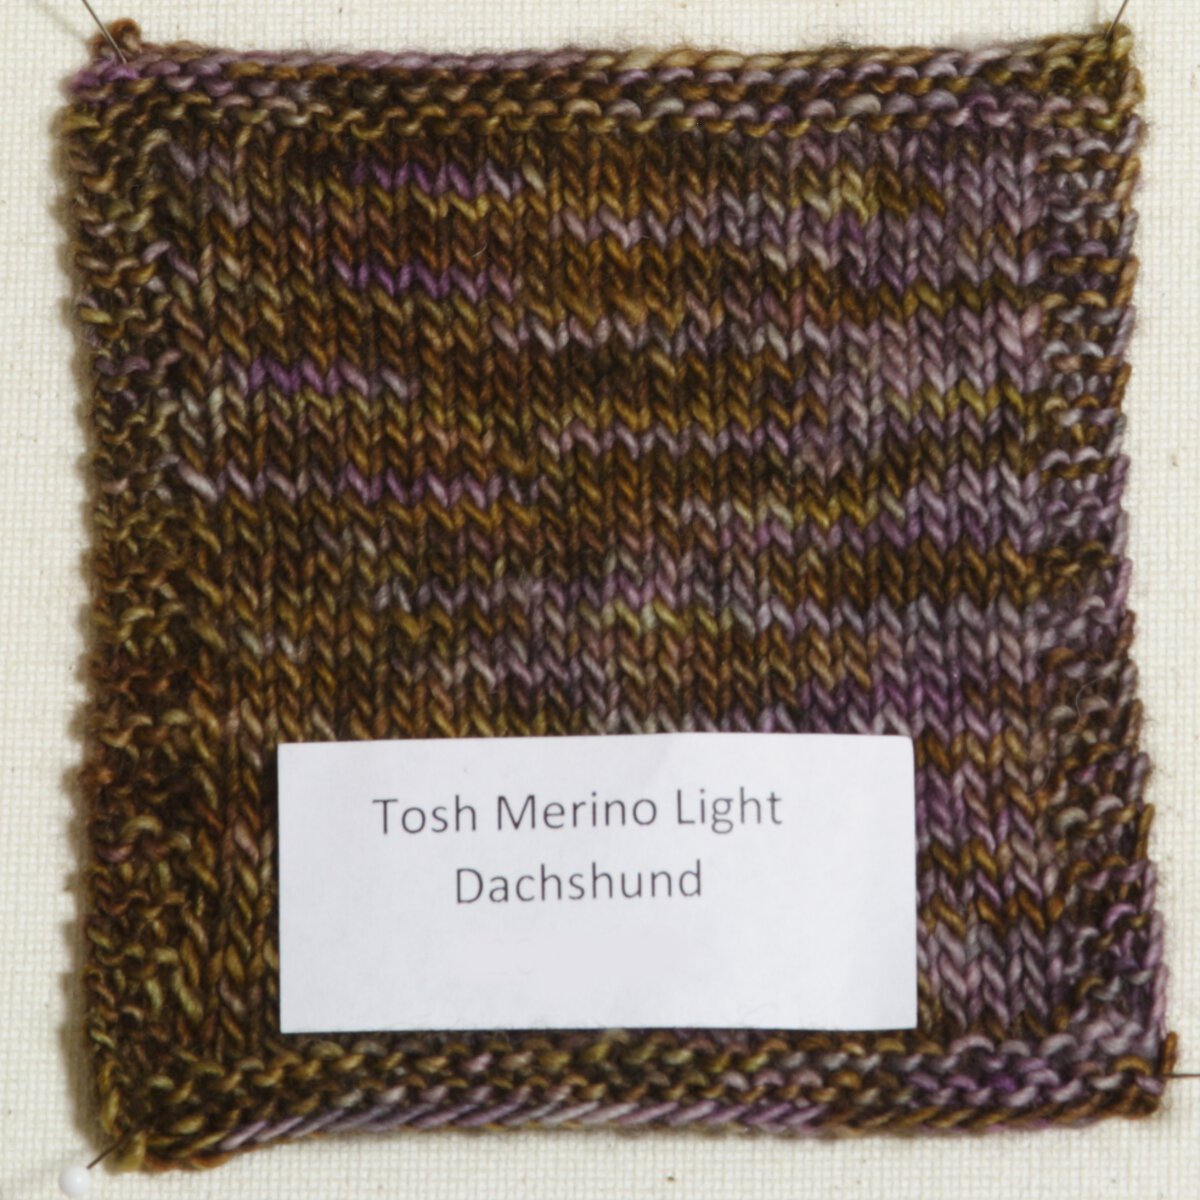 madelinetosh tosh merino light yarn dachshund discontinued project. Black Bedroom Furniture Sets. Home Design Ideas